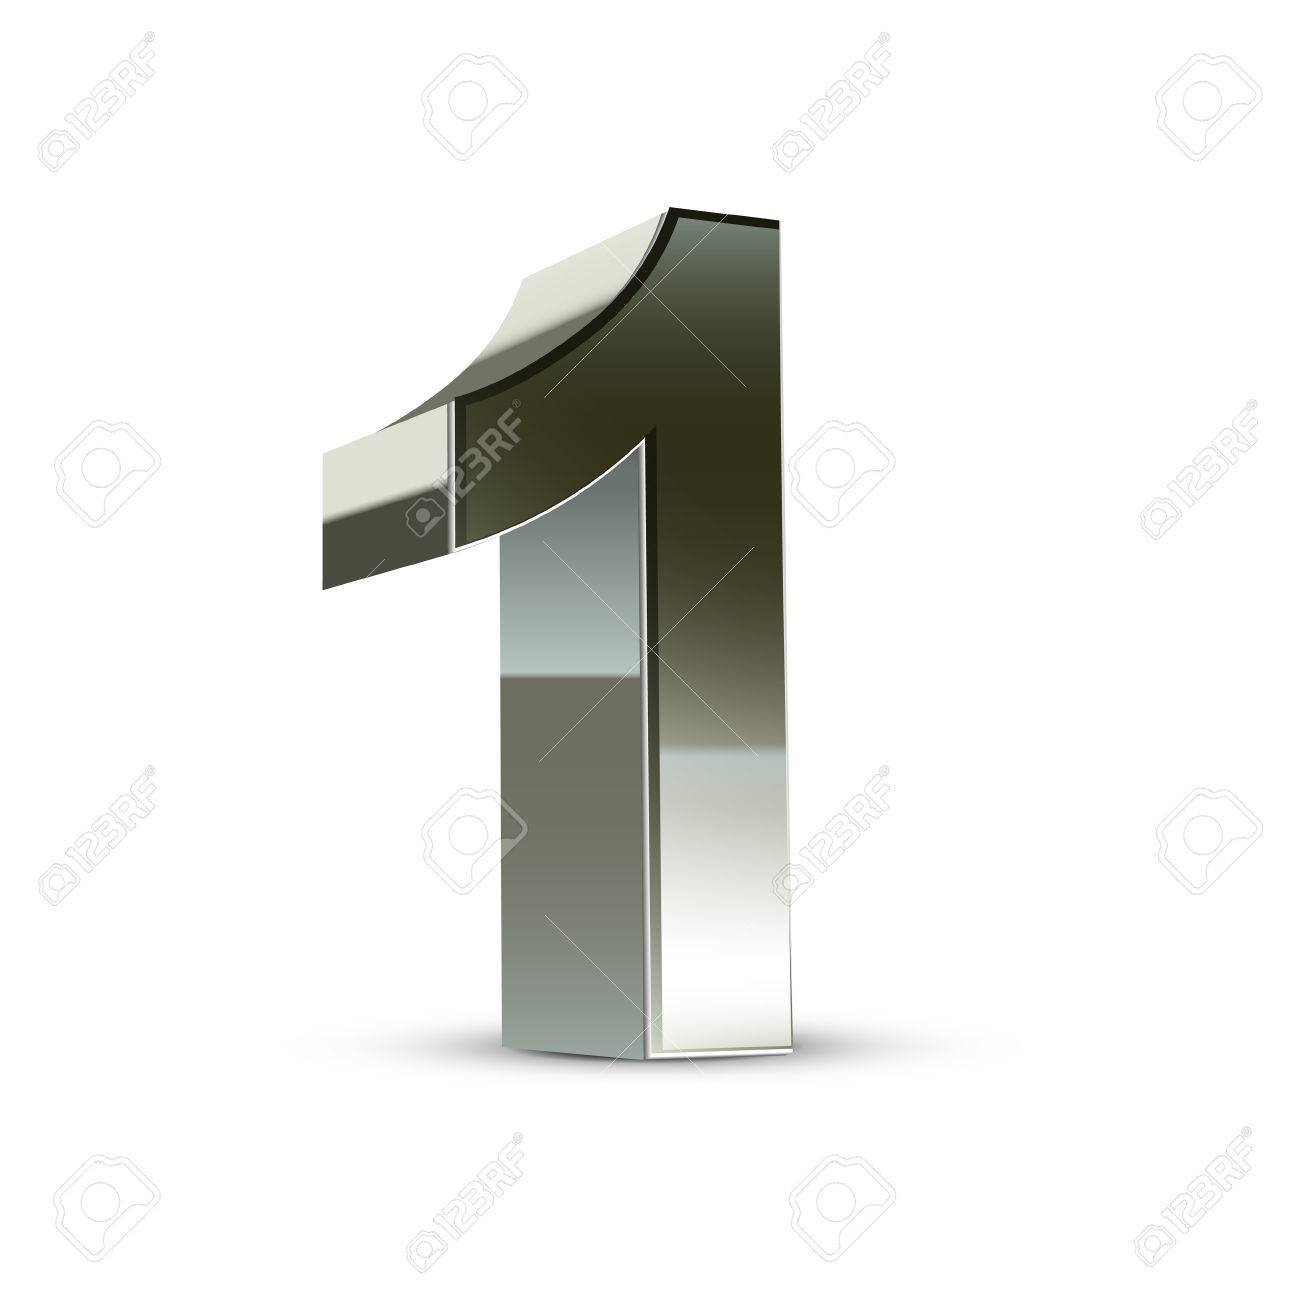 Silver number clipart - ClipartFest